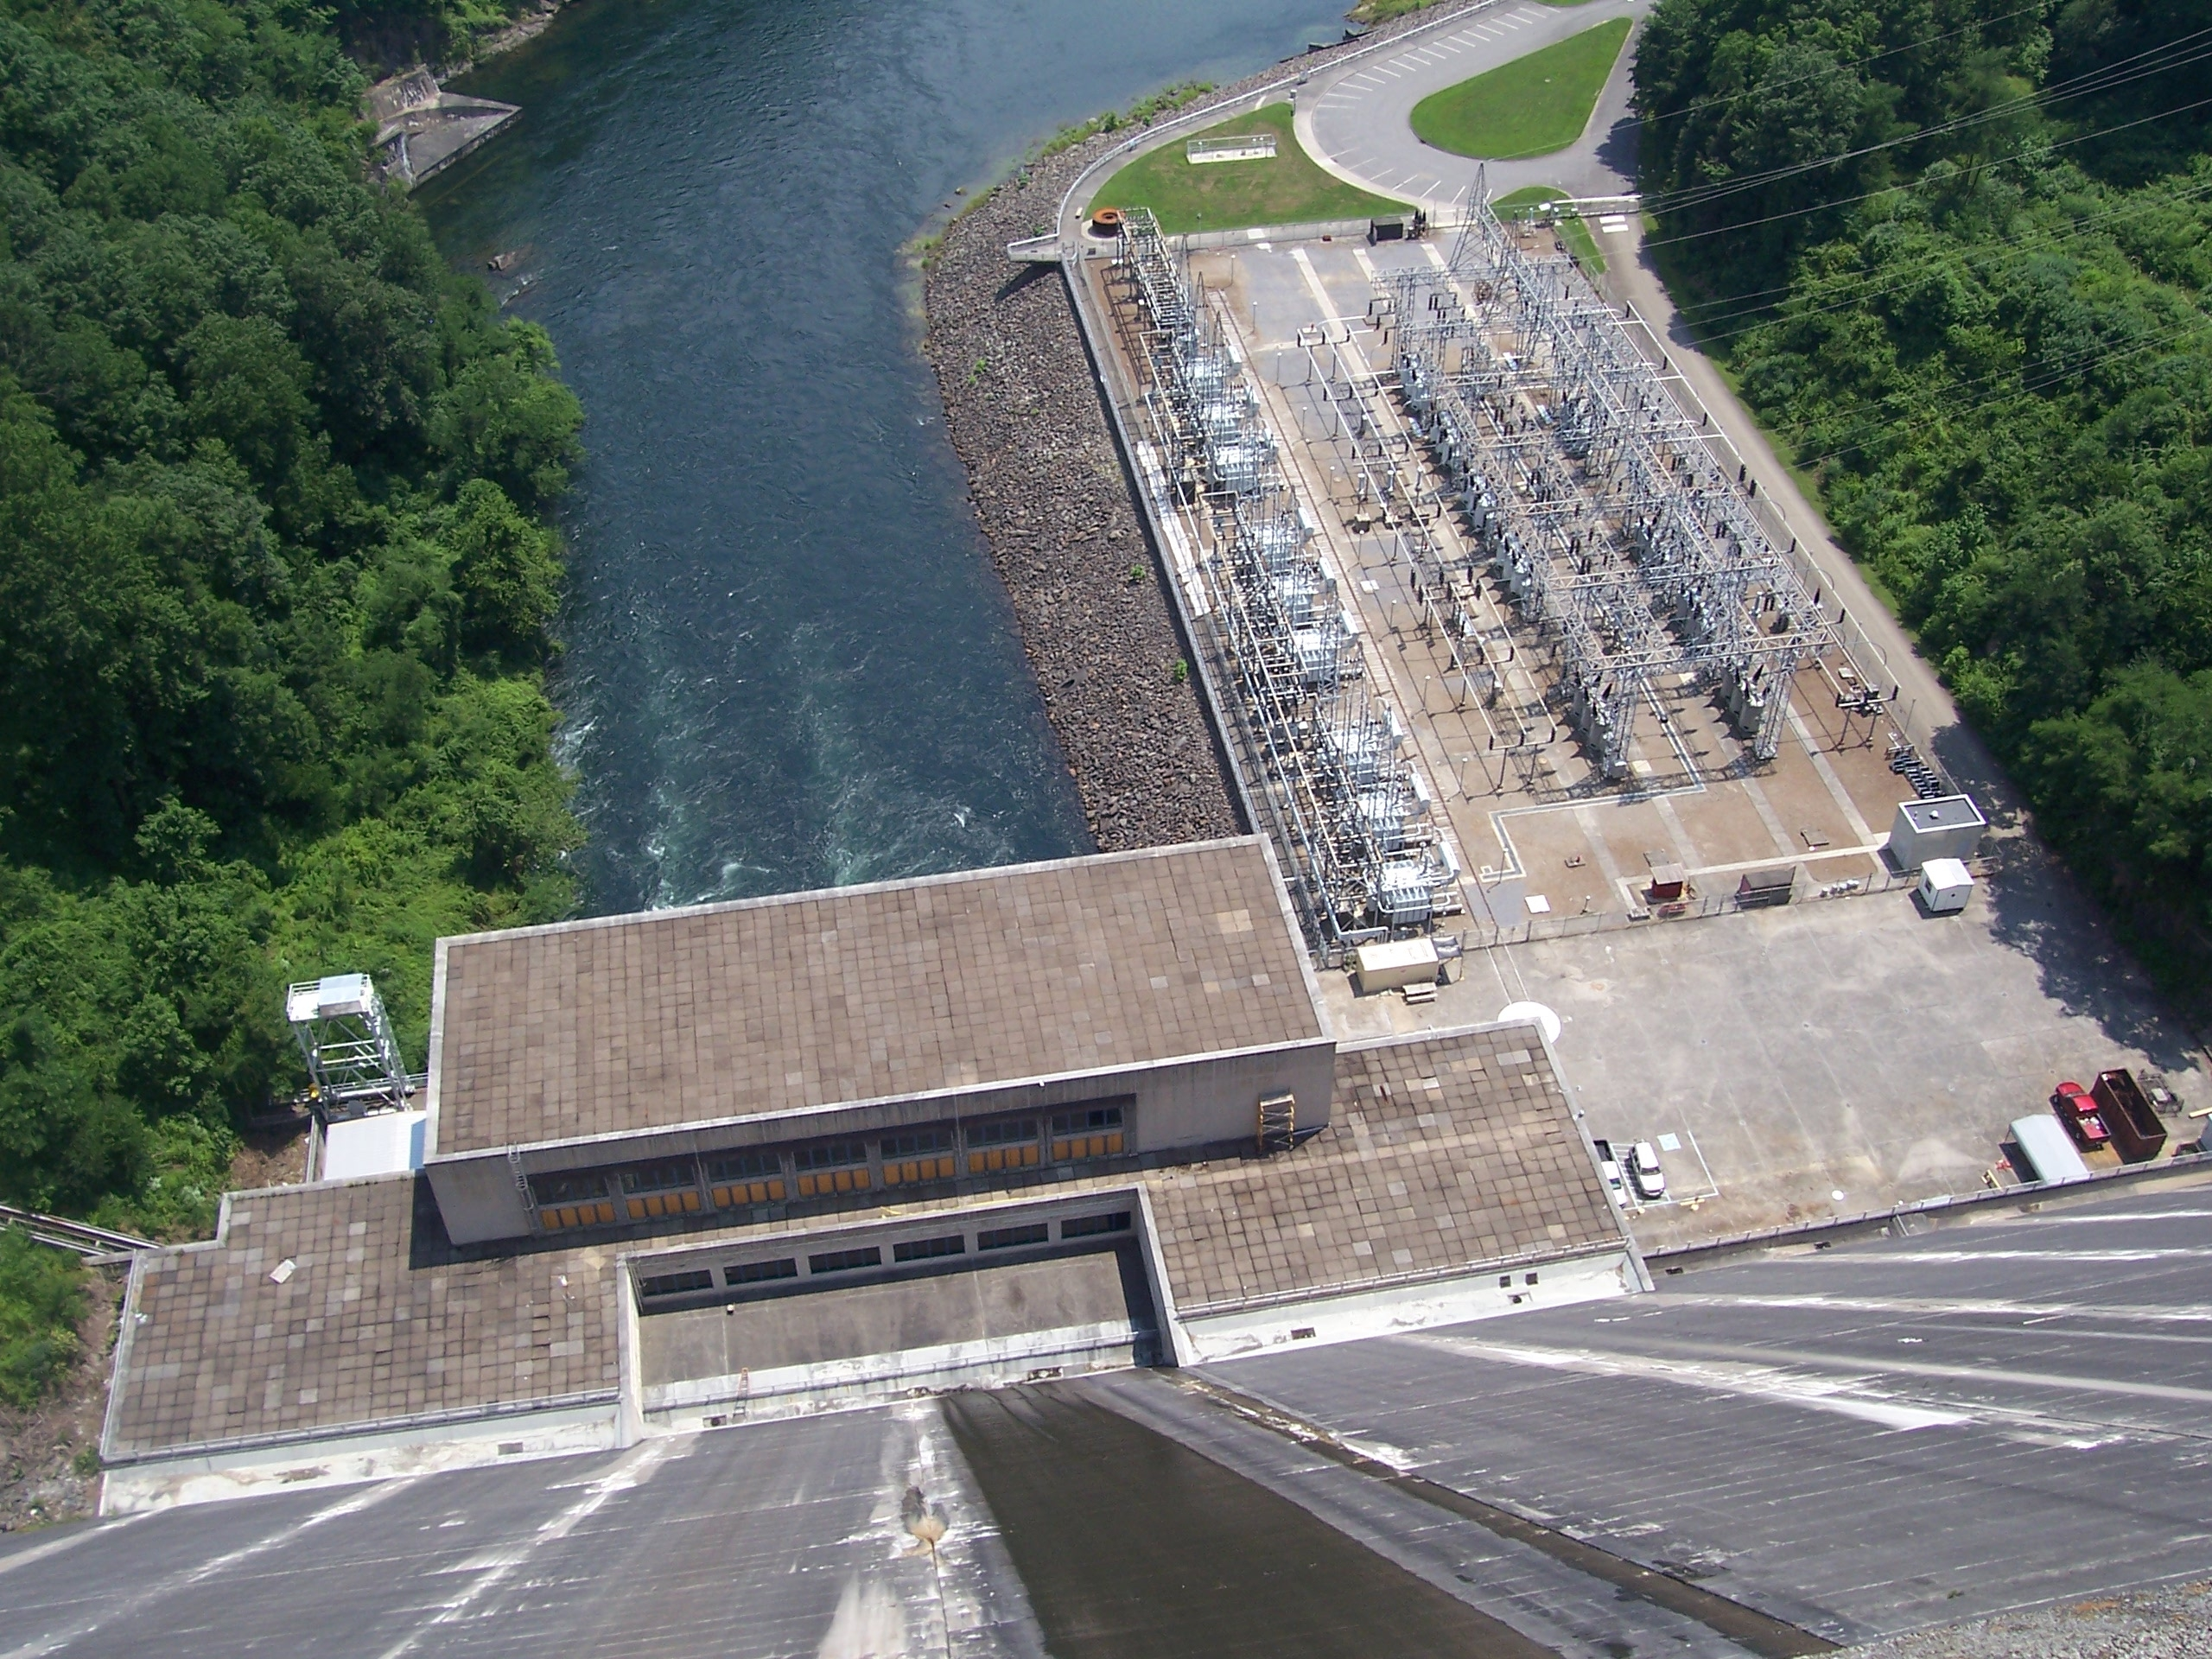 View of the power house and power yard from top of the dam.